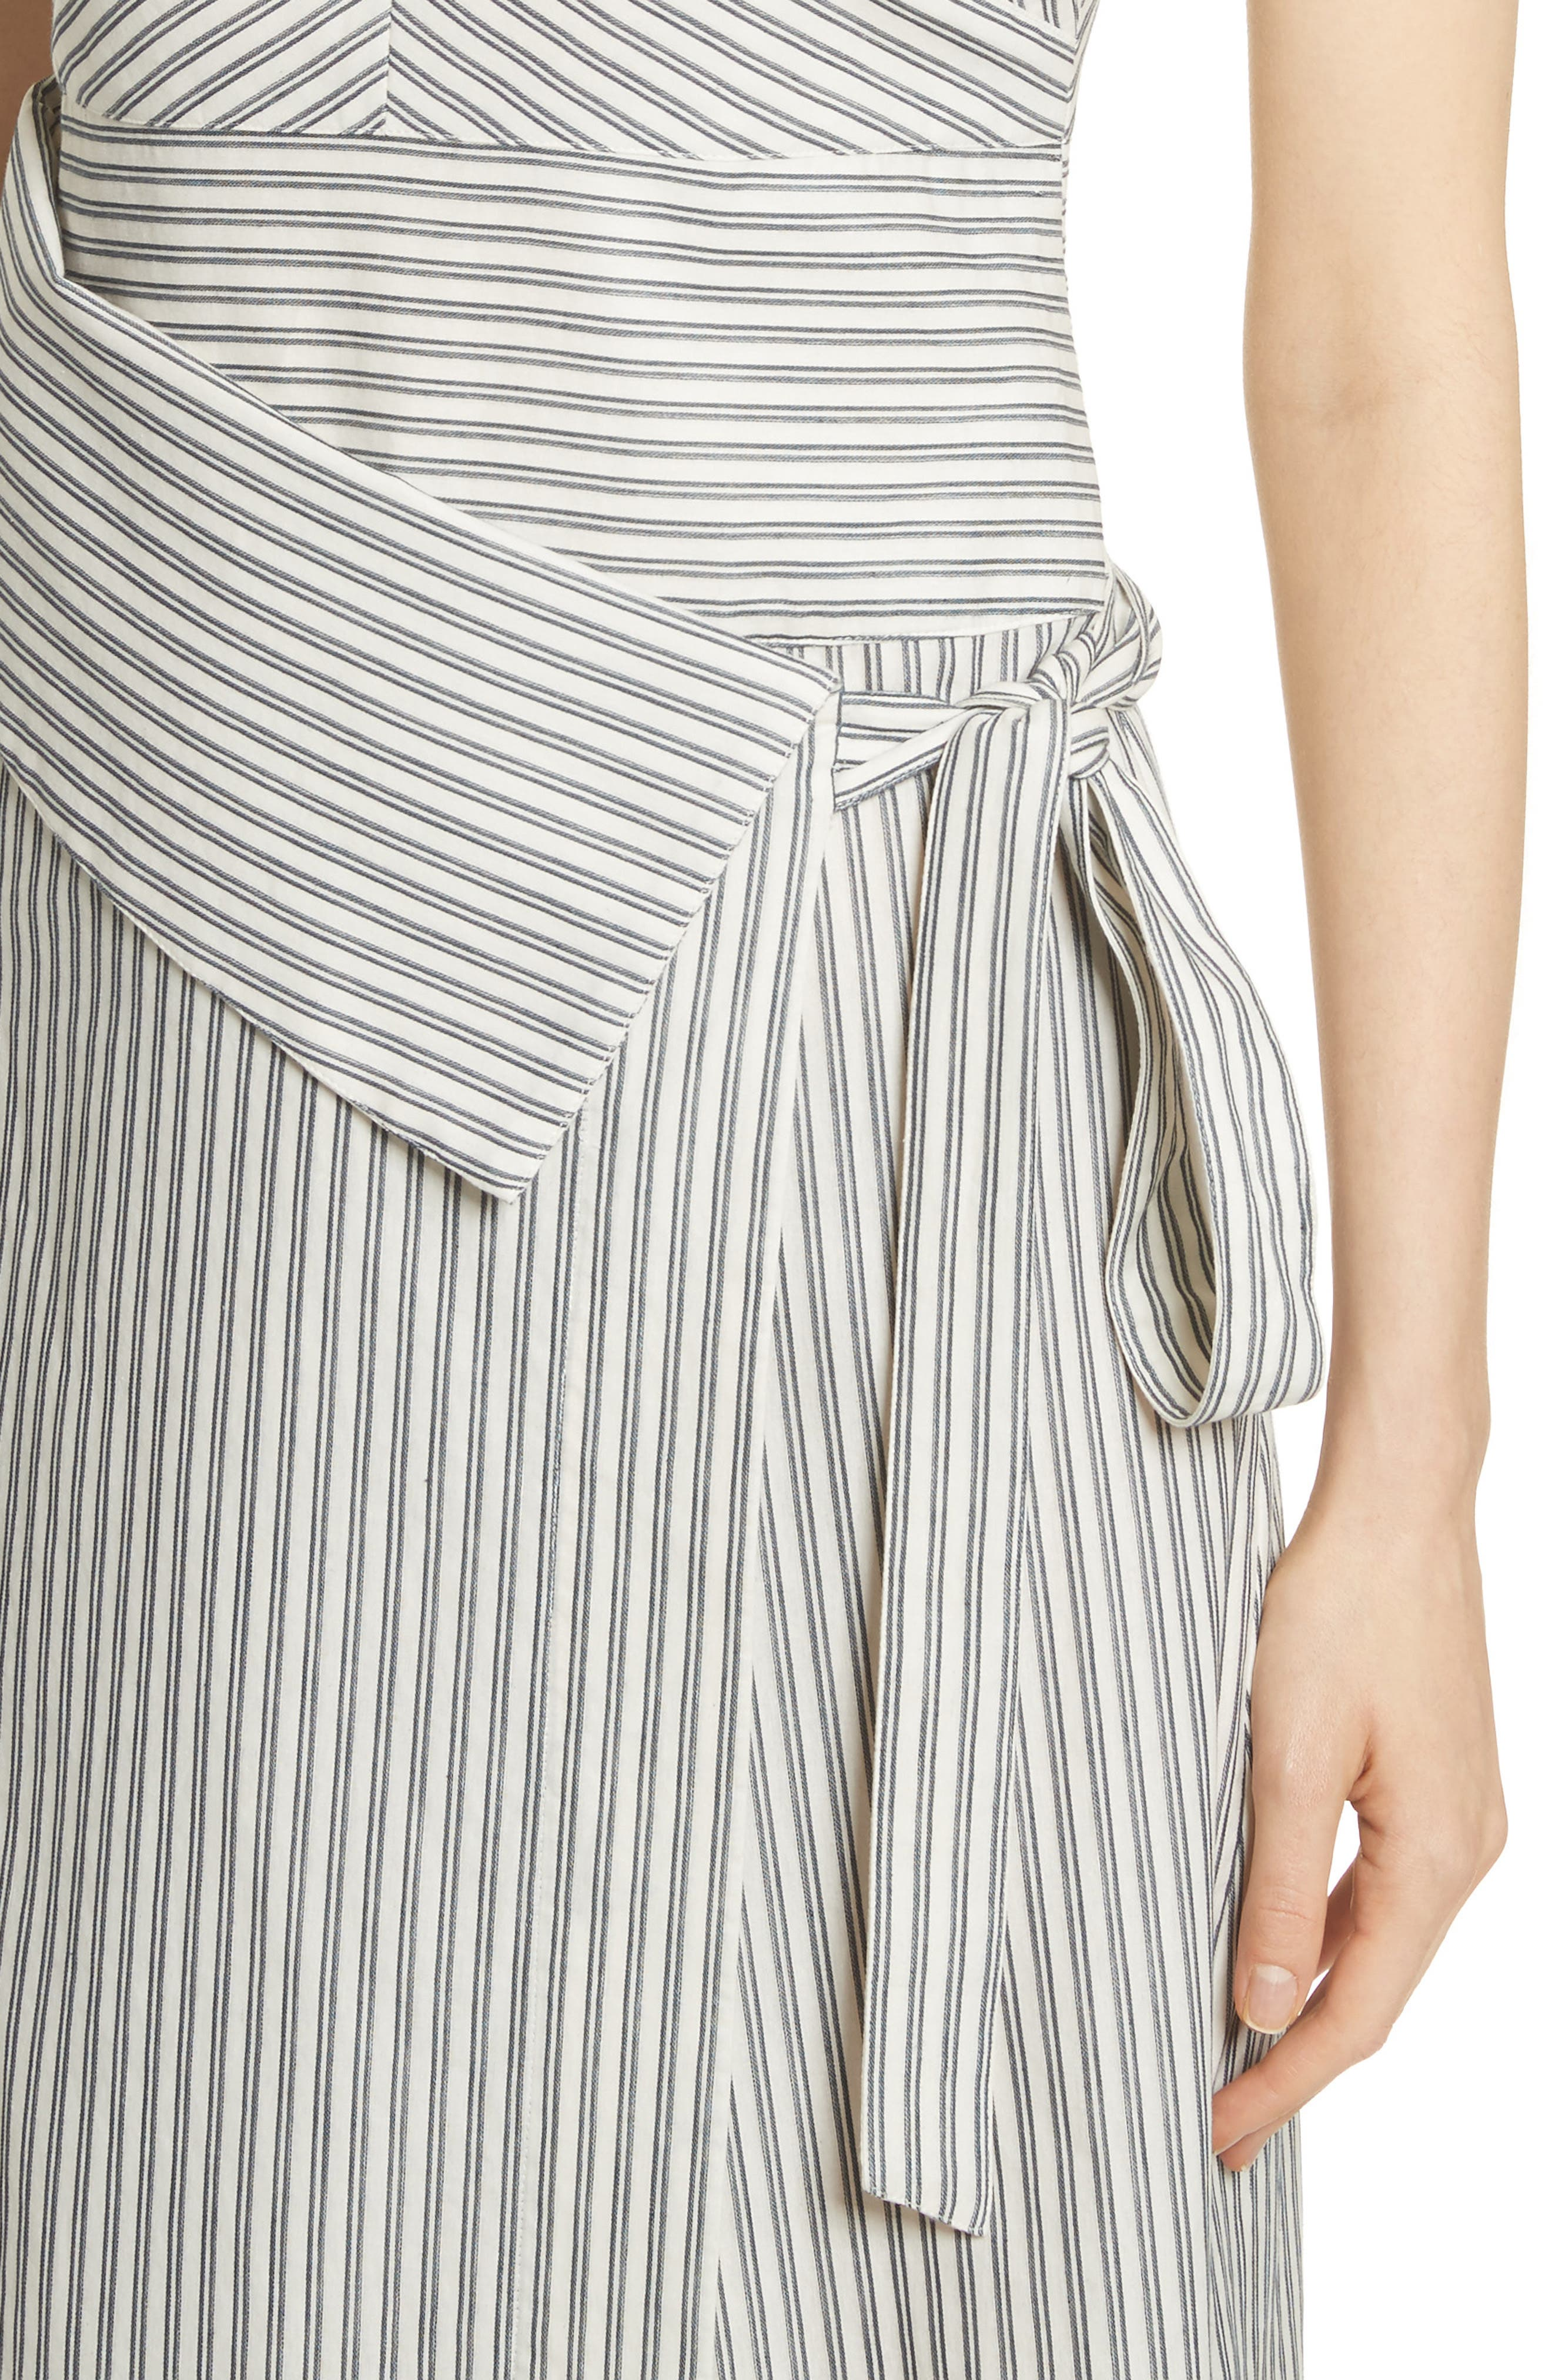 Stripe Wrap Front Midi Dress,                             Alternate thumbnail 6, color,                             Blue/ Ivory Stripe